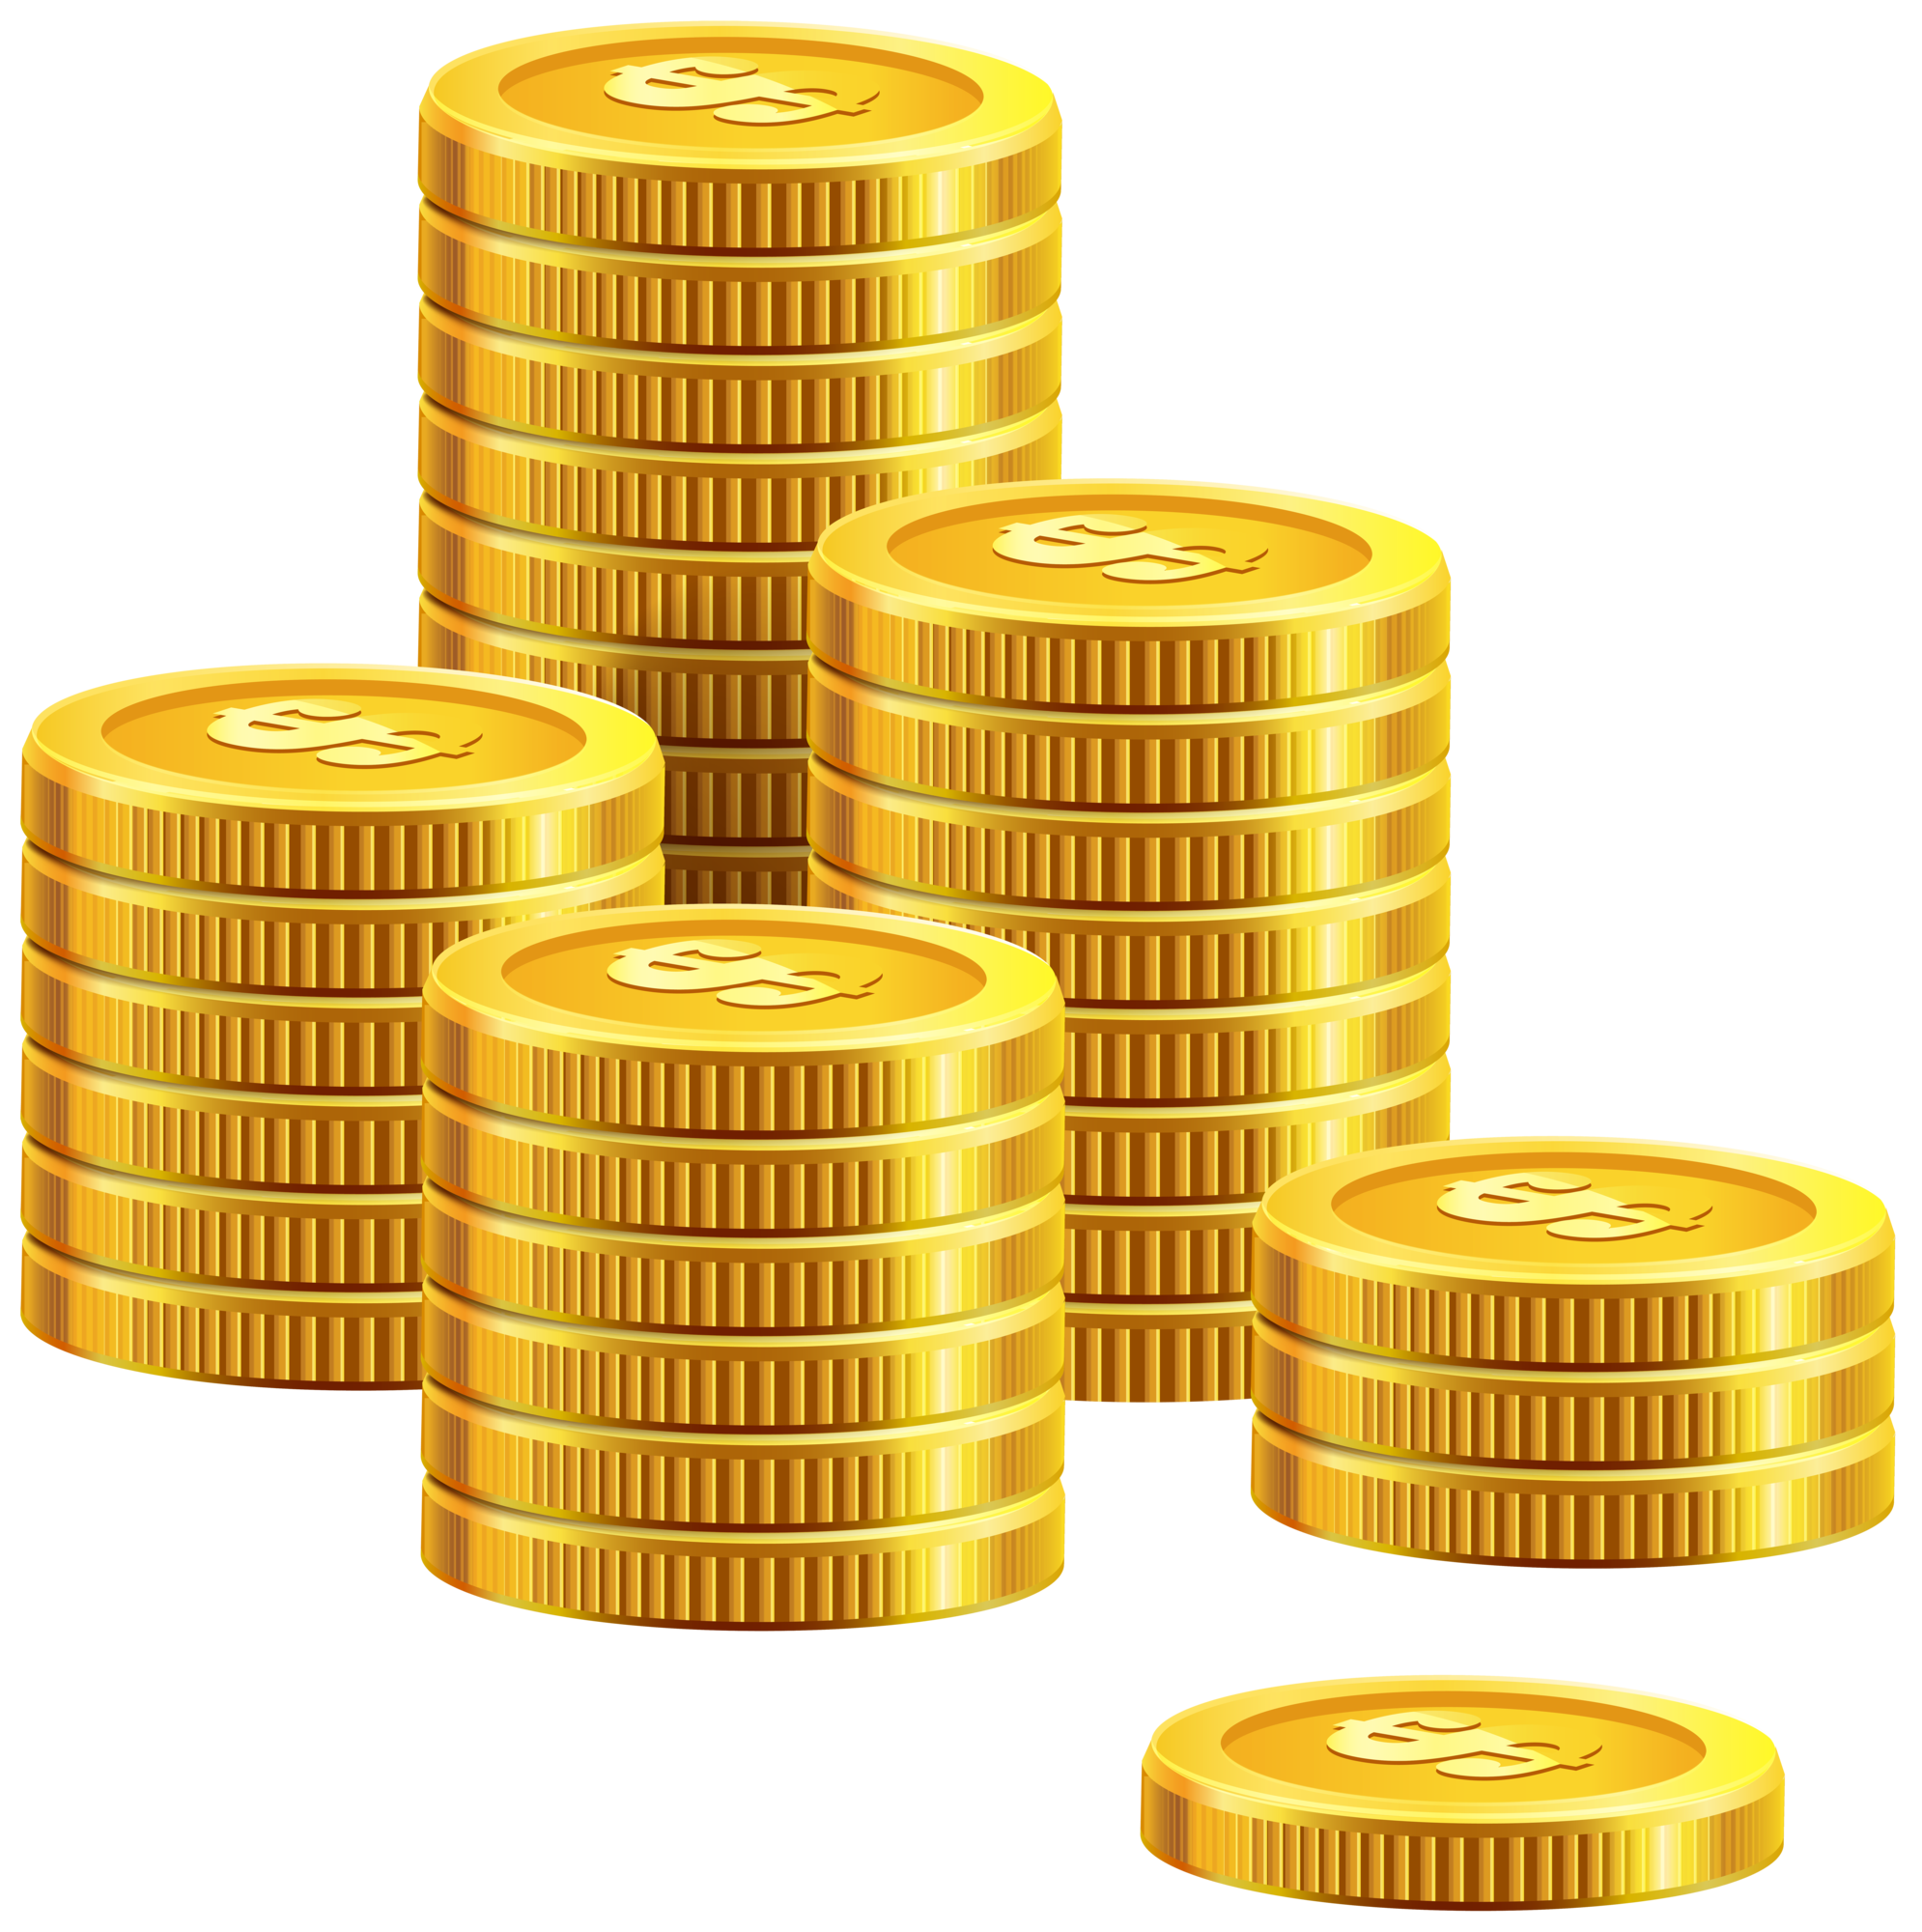 Coin money clipart graphic black and white stock Pile Of Coins PNG Clip Art graphic black and white stock